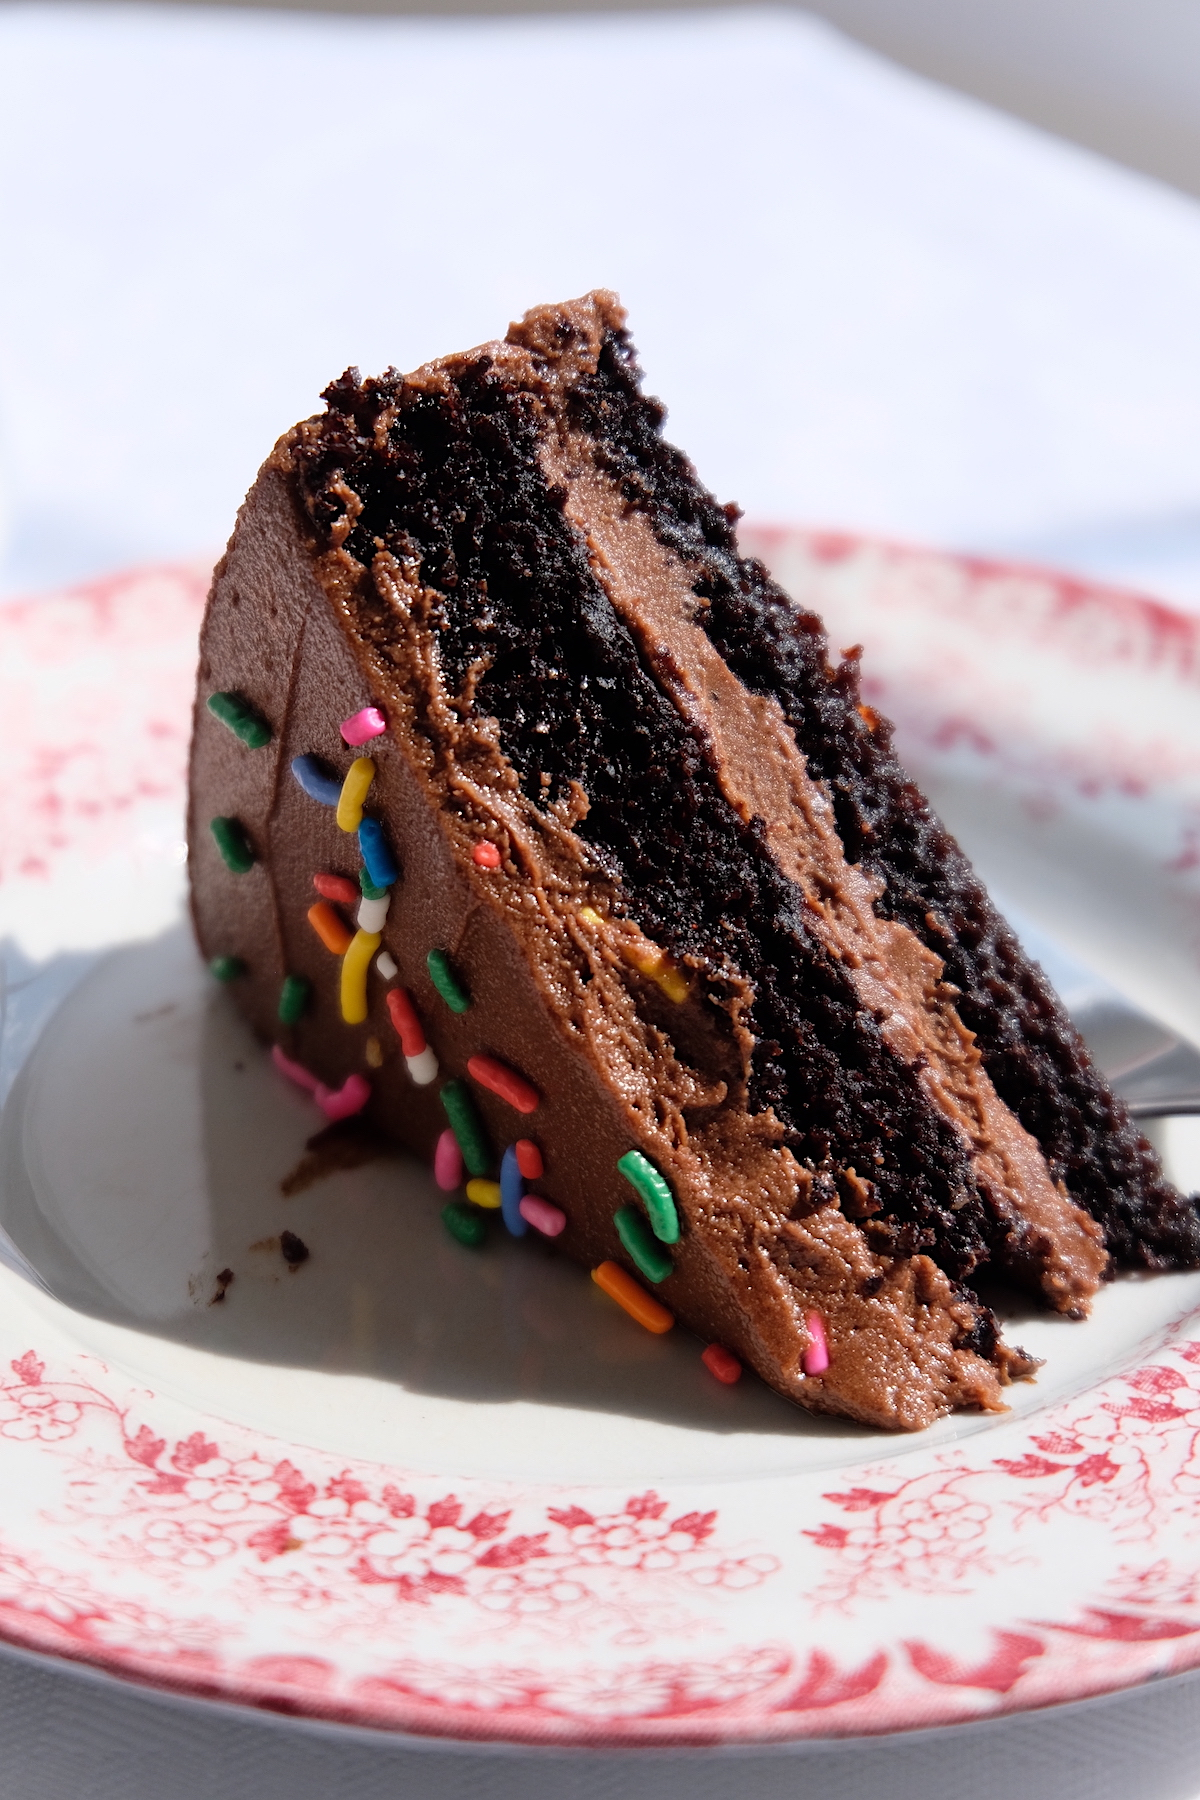 A slice of delicious-looking chocolate cake with chocolate frosting and colorful sprinkles on a plate.